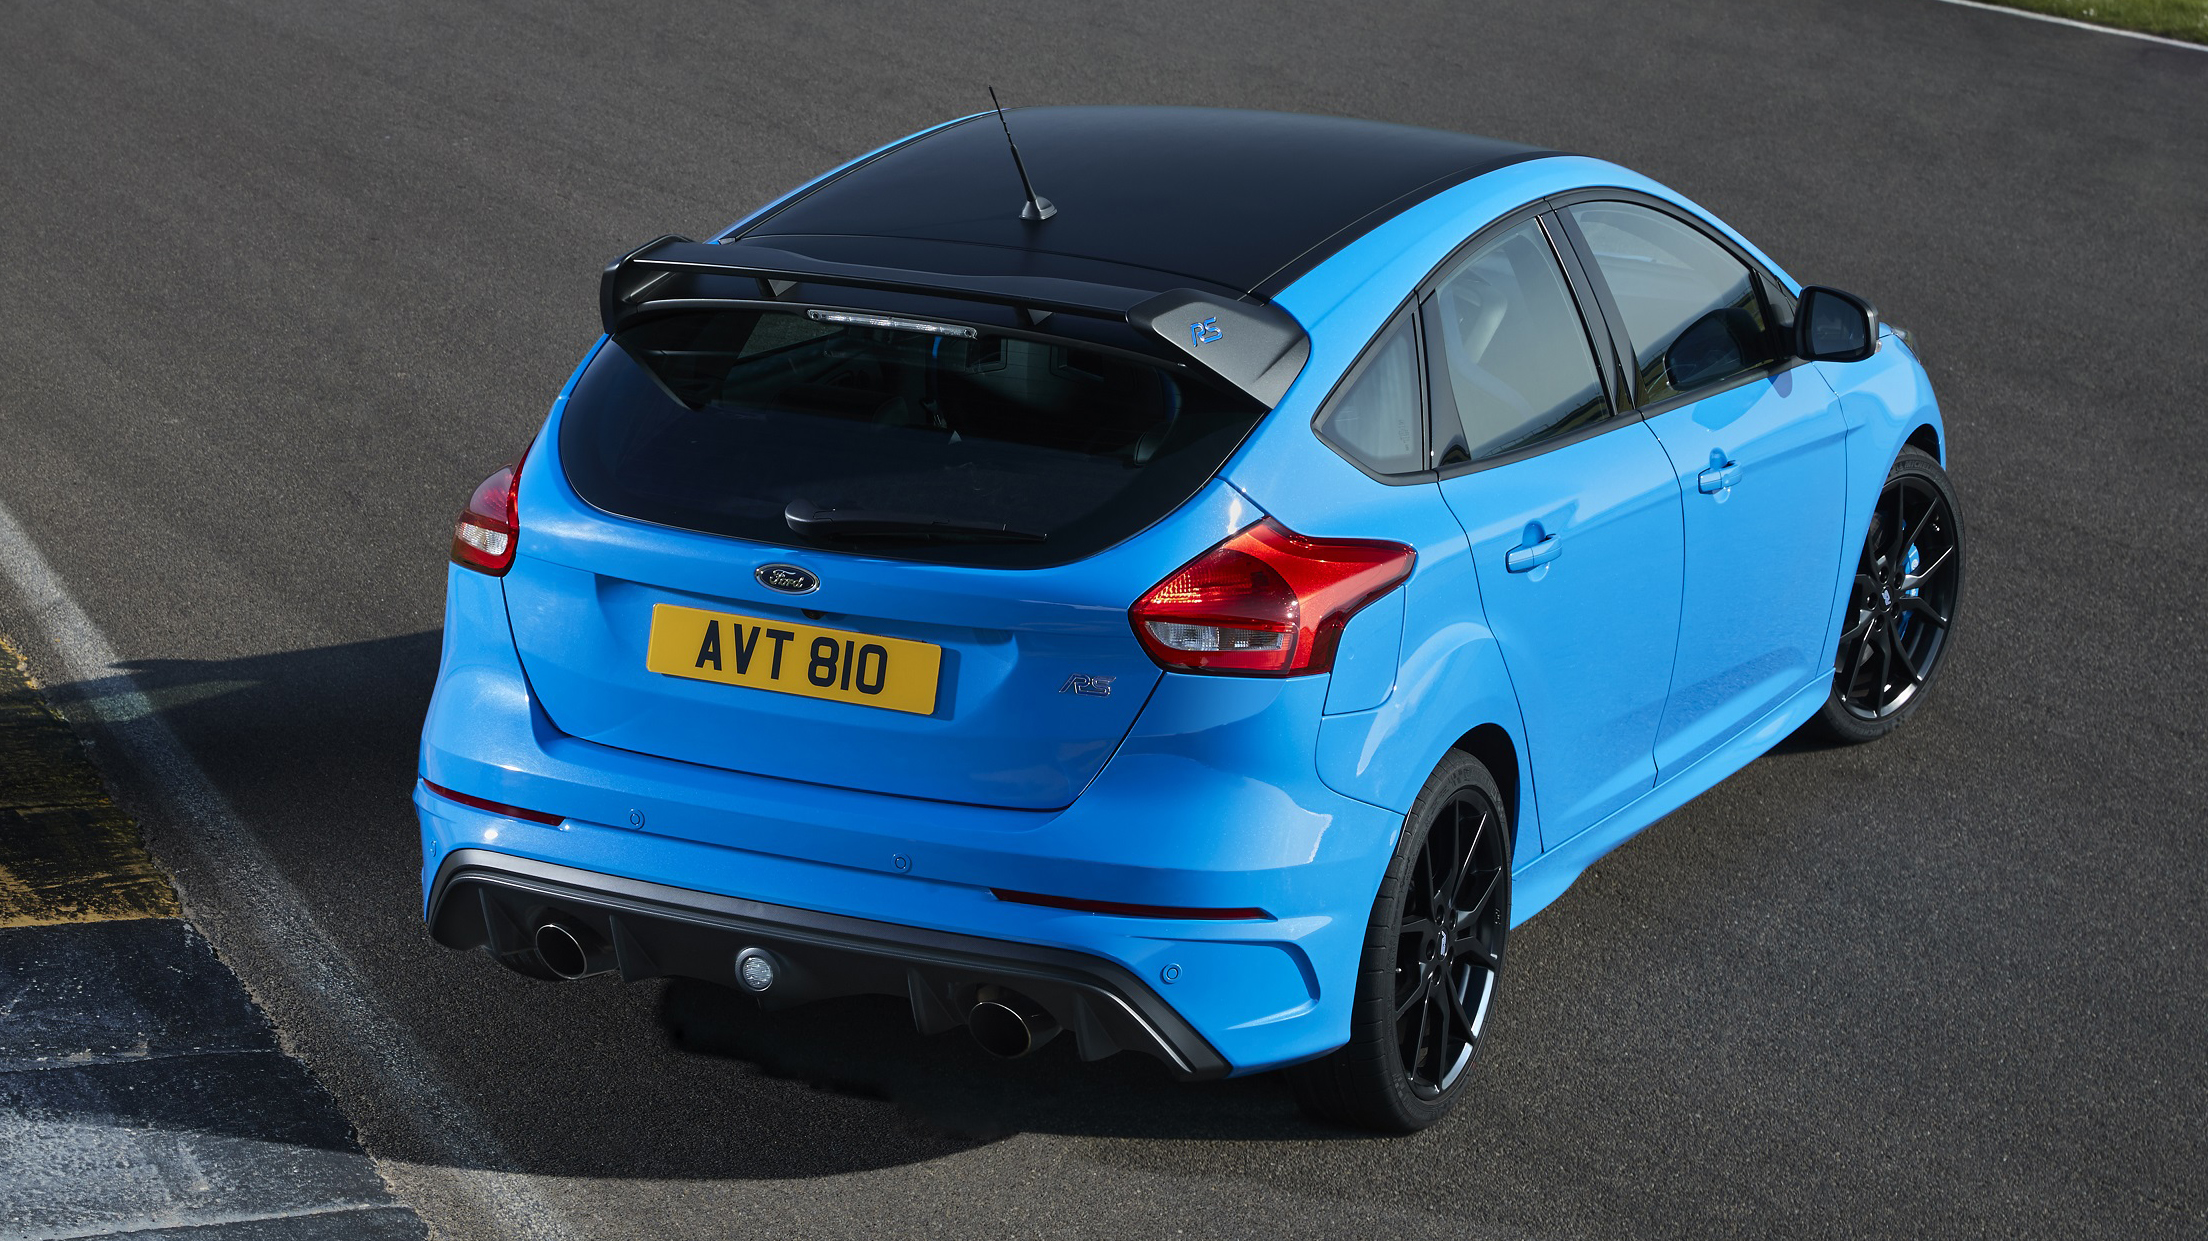 The new Ford Focus RS rear